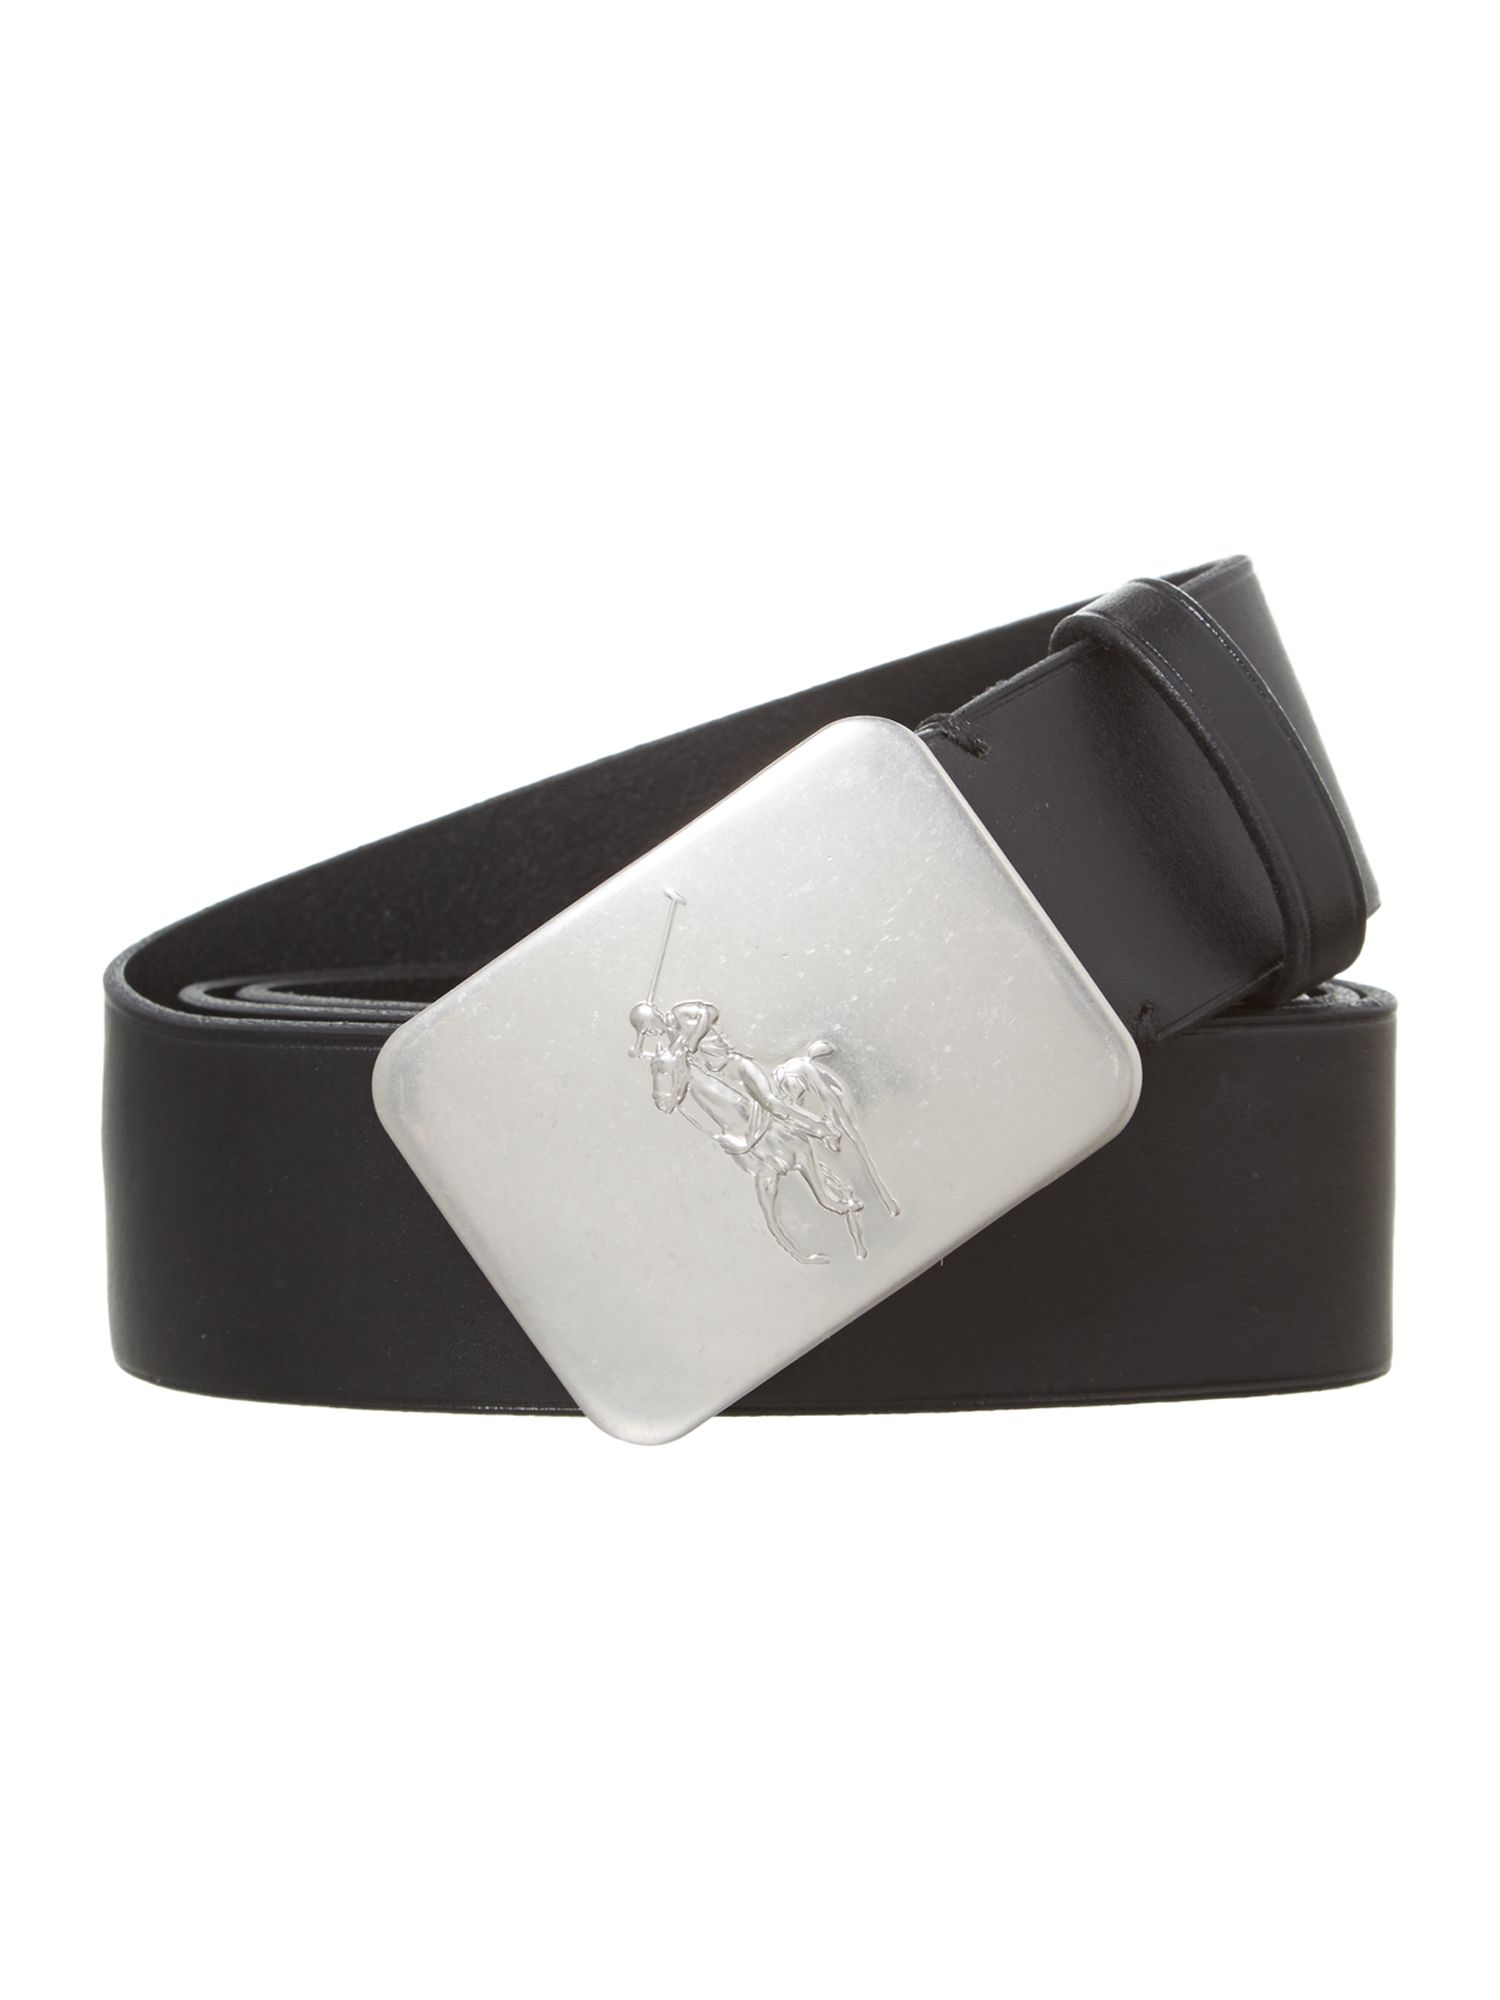 Polo plaque belt